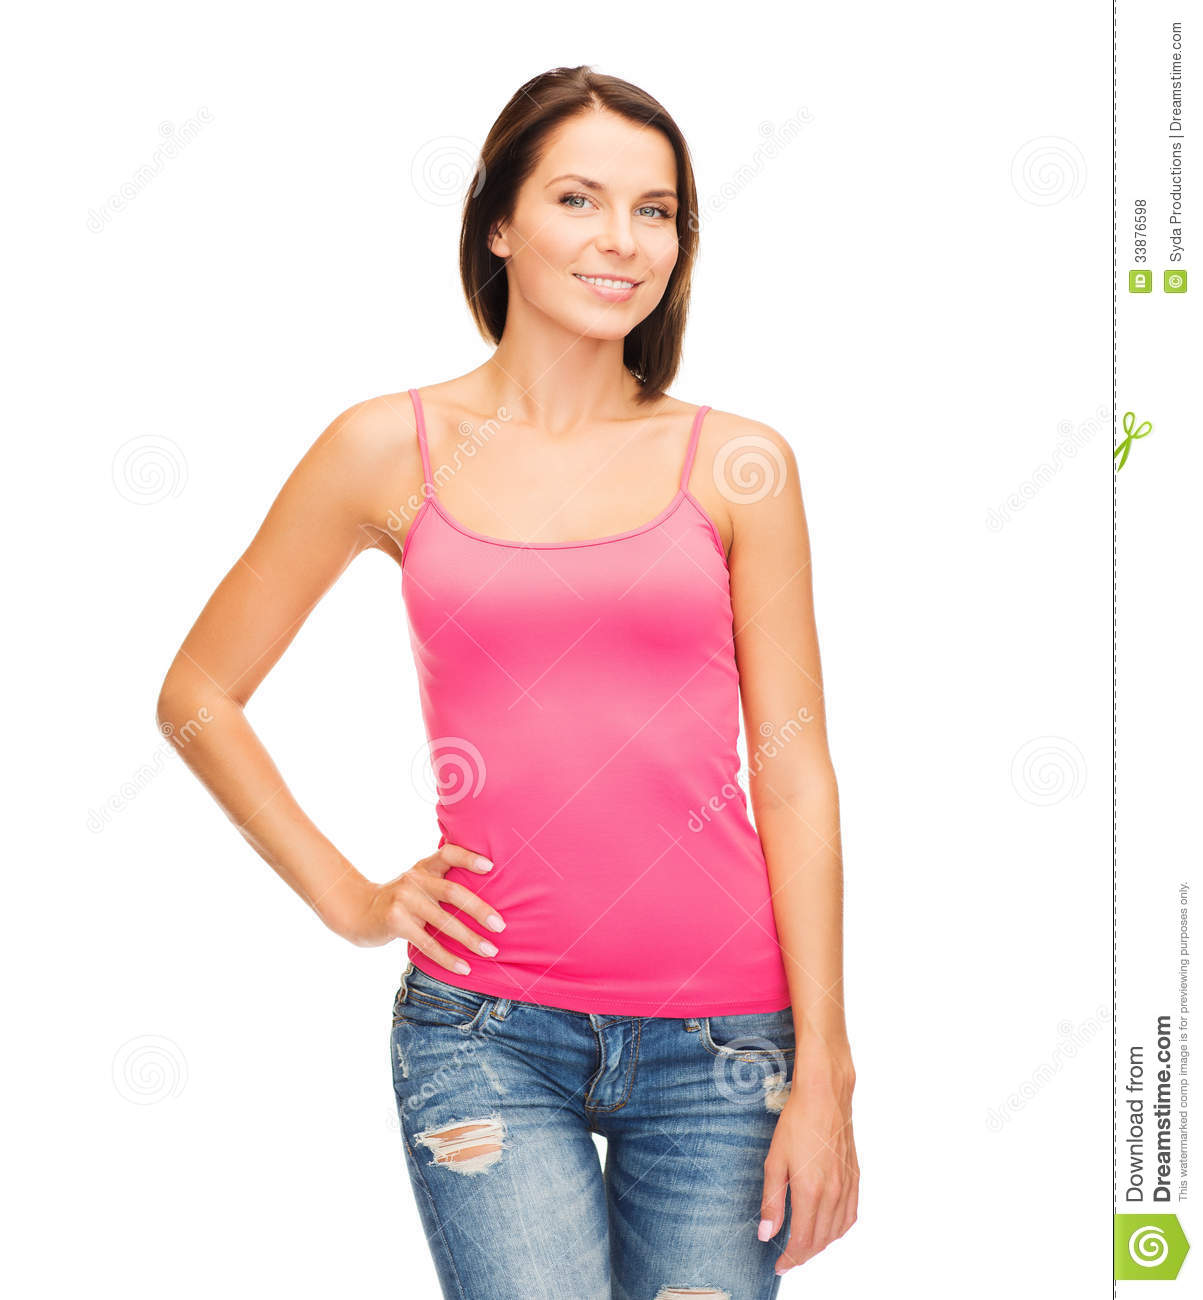 Women's tank tops come in a rainbow of colors—from heather gray to neon yellow. And, we carry them in all different styles with different technologies. Get your mat and head to a hot yoga session in a relaxed-fit tank with patented technology that dries more quickly and doesn't cling or chafe.